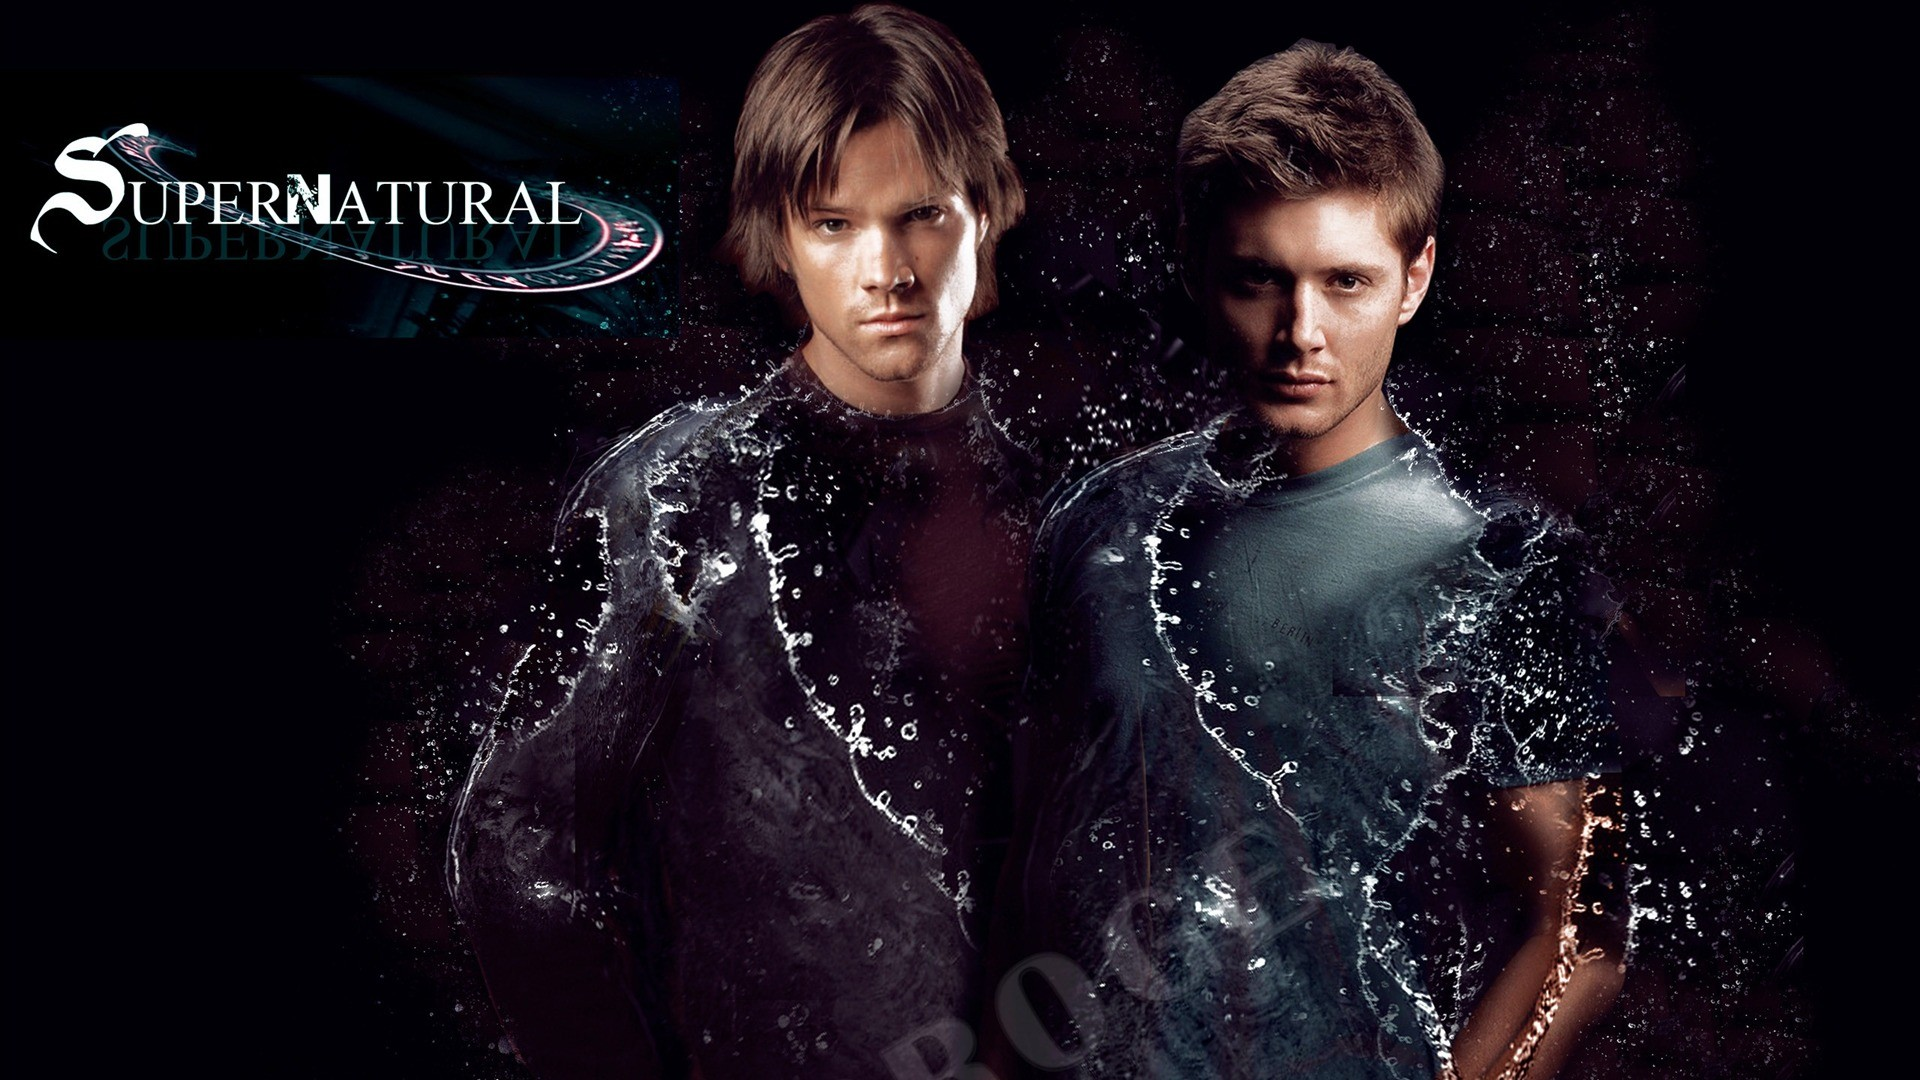 Dean Winchester and Sam Winchester-Supernatural-HD Image –  wallpaper download